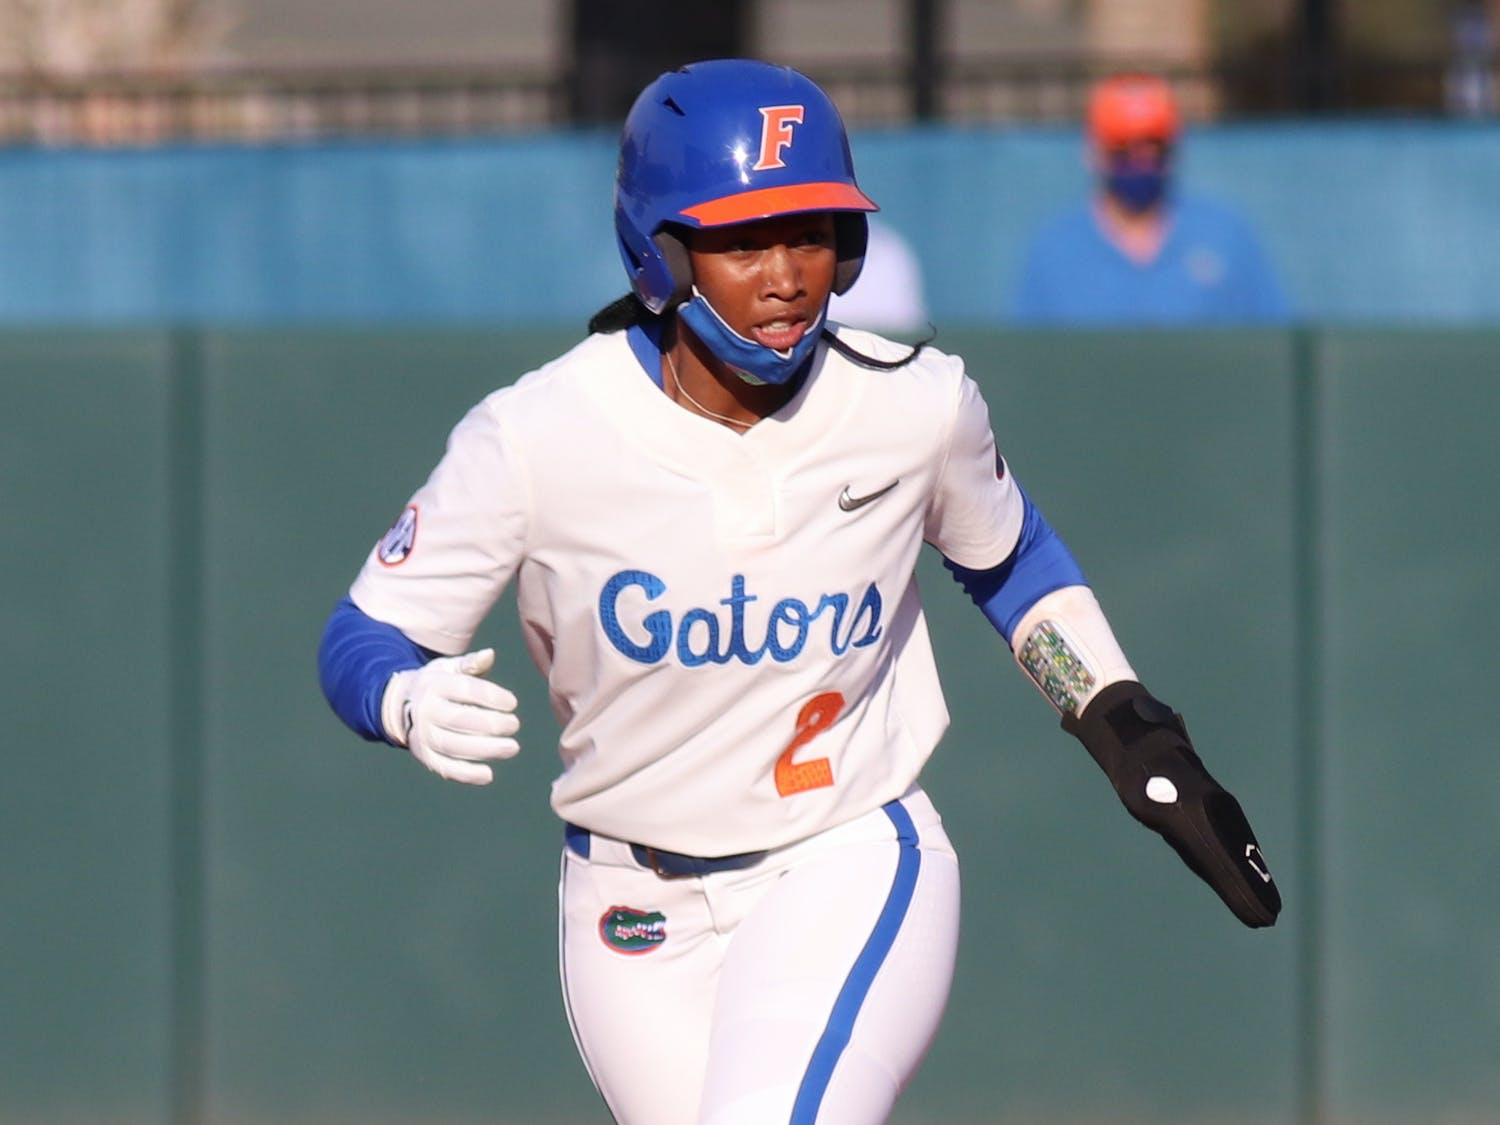 The Gators silenced FGCU in a fast 3-0 win Wednesday in Fort Myers, Florida. Photo from UF-FSU game March 3.